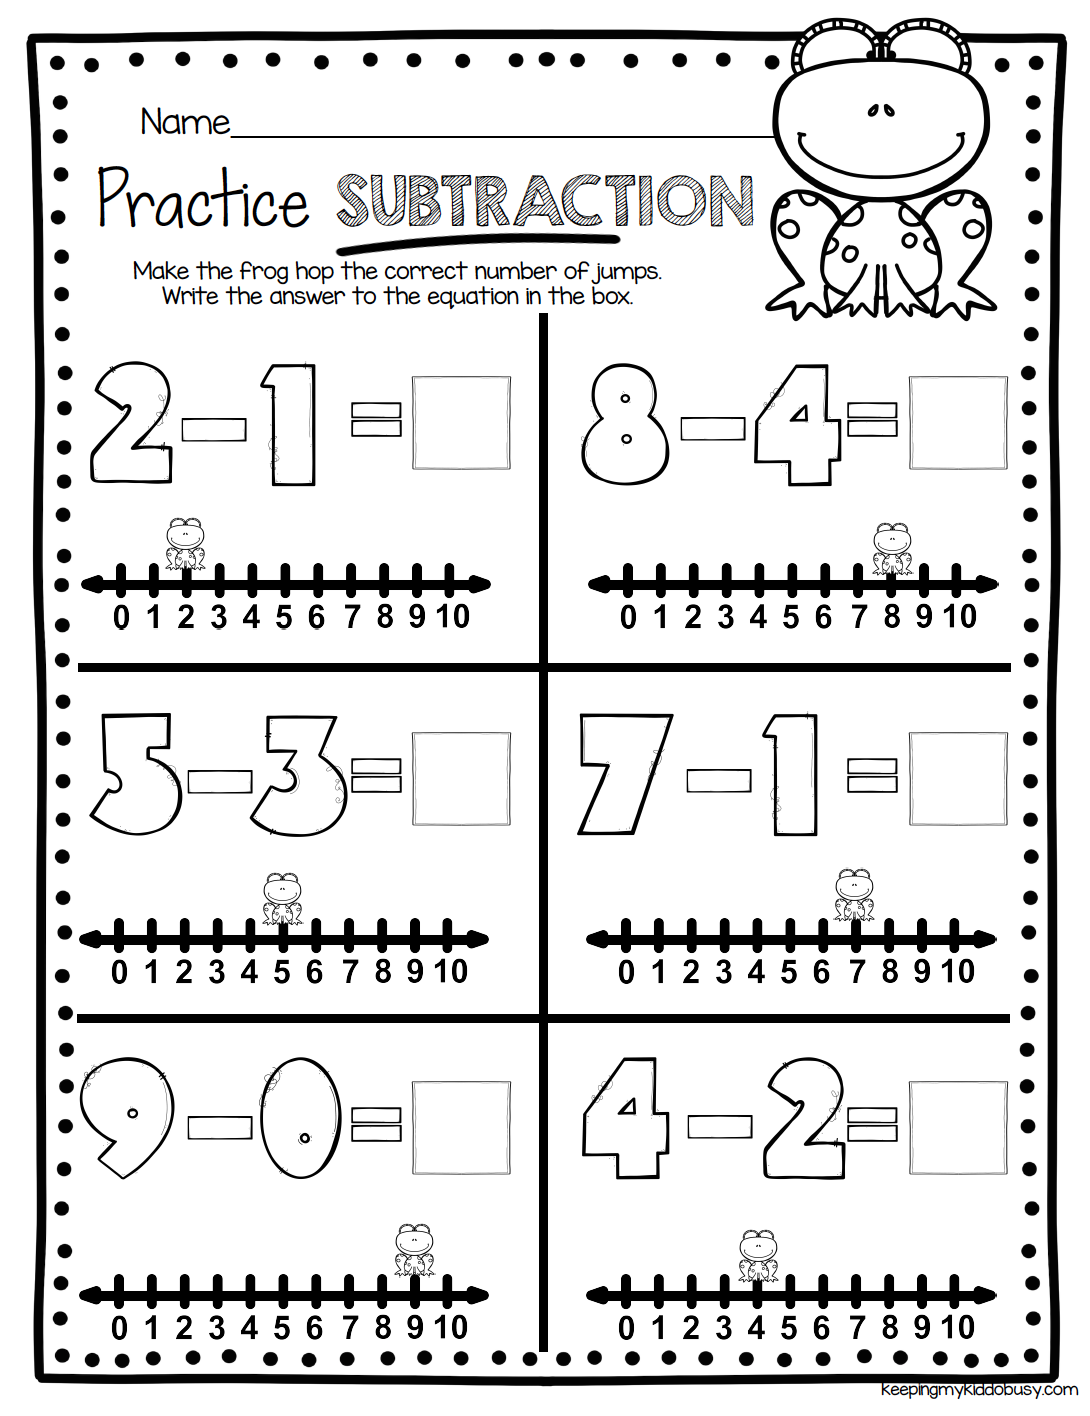 Operations Algebraic Thinking Bundle Freebies Keeping My Kiddo Busy Subtraction Kindergarten Addition And Subtraction Worksheets Math Subtraction